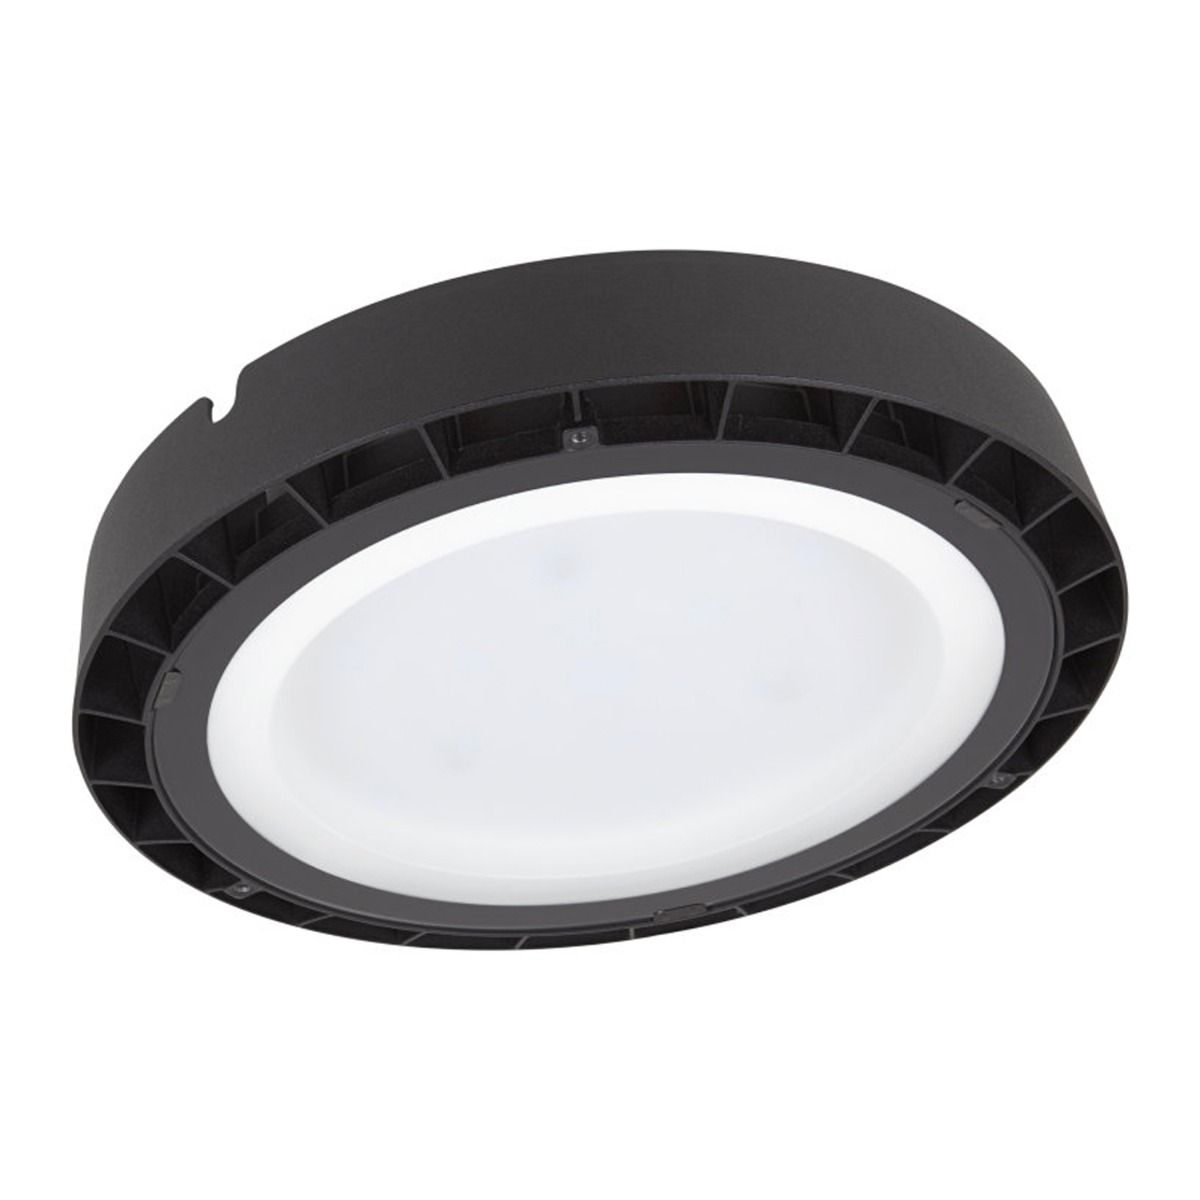 Ledvance LED High Bay Value 150W 4000K IP65 16000lm 100D | Cool White - Replaces 250W